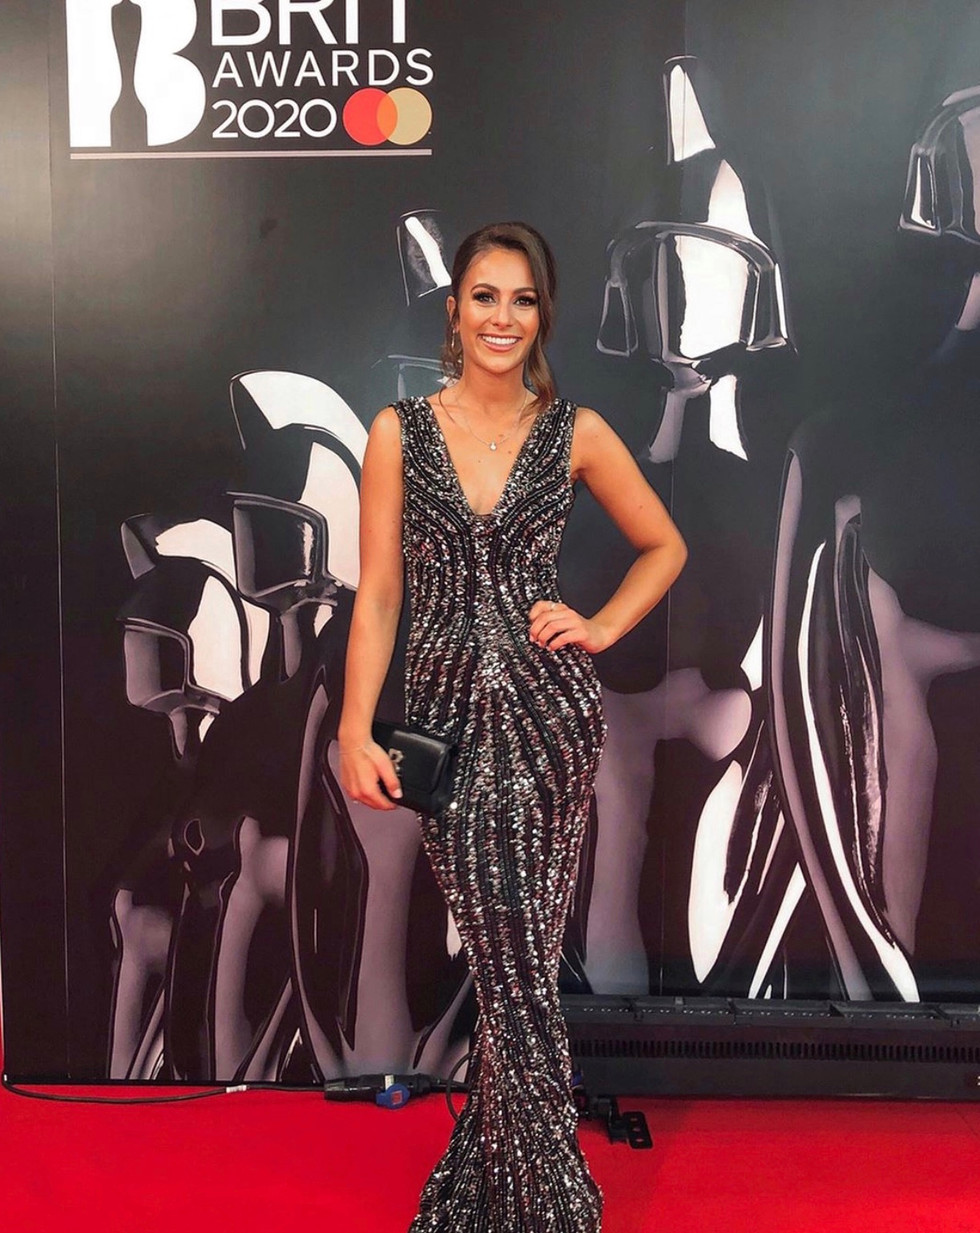 Steph Elswood for the BRITS